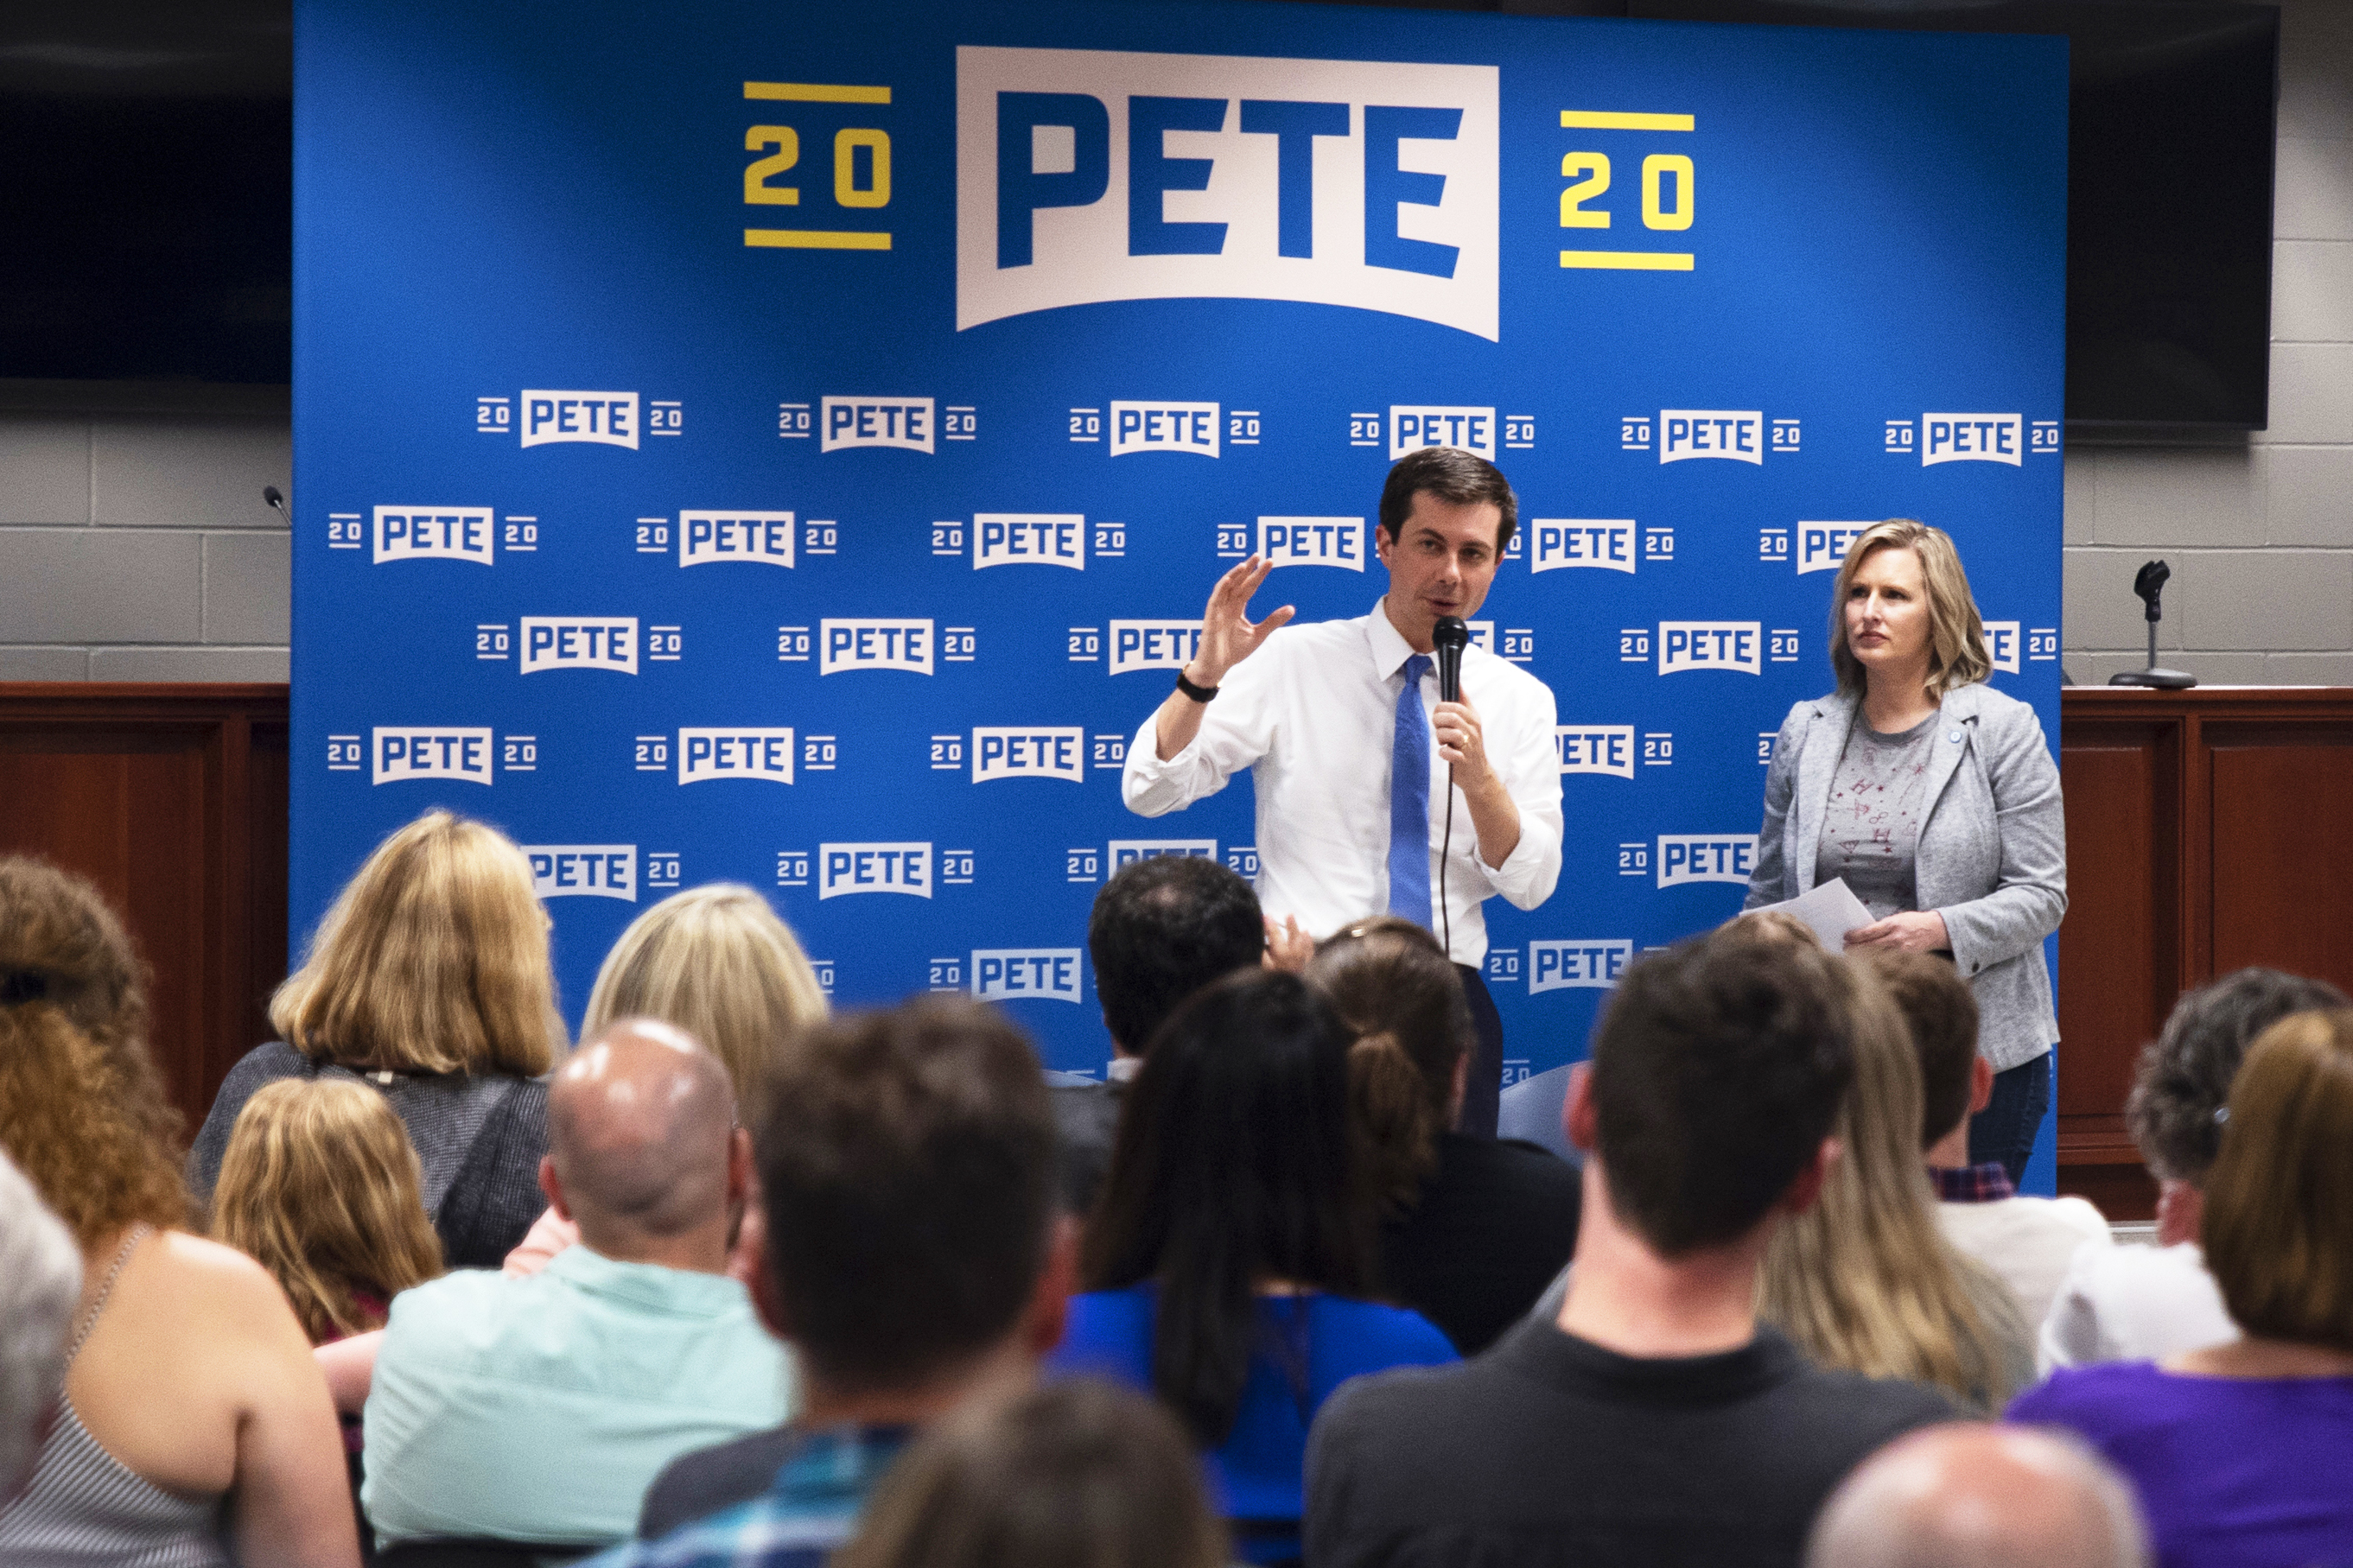 'Love That Motivates': Pete Buttigieg On Marriage And Faith